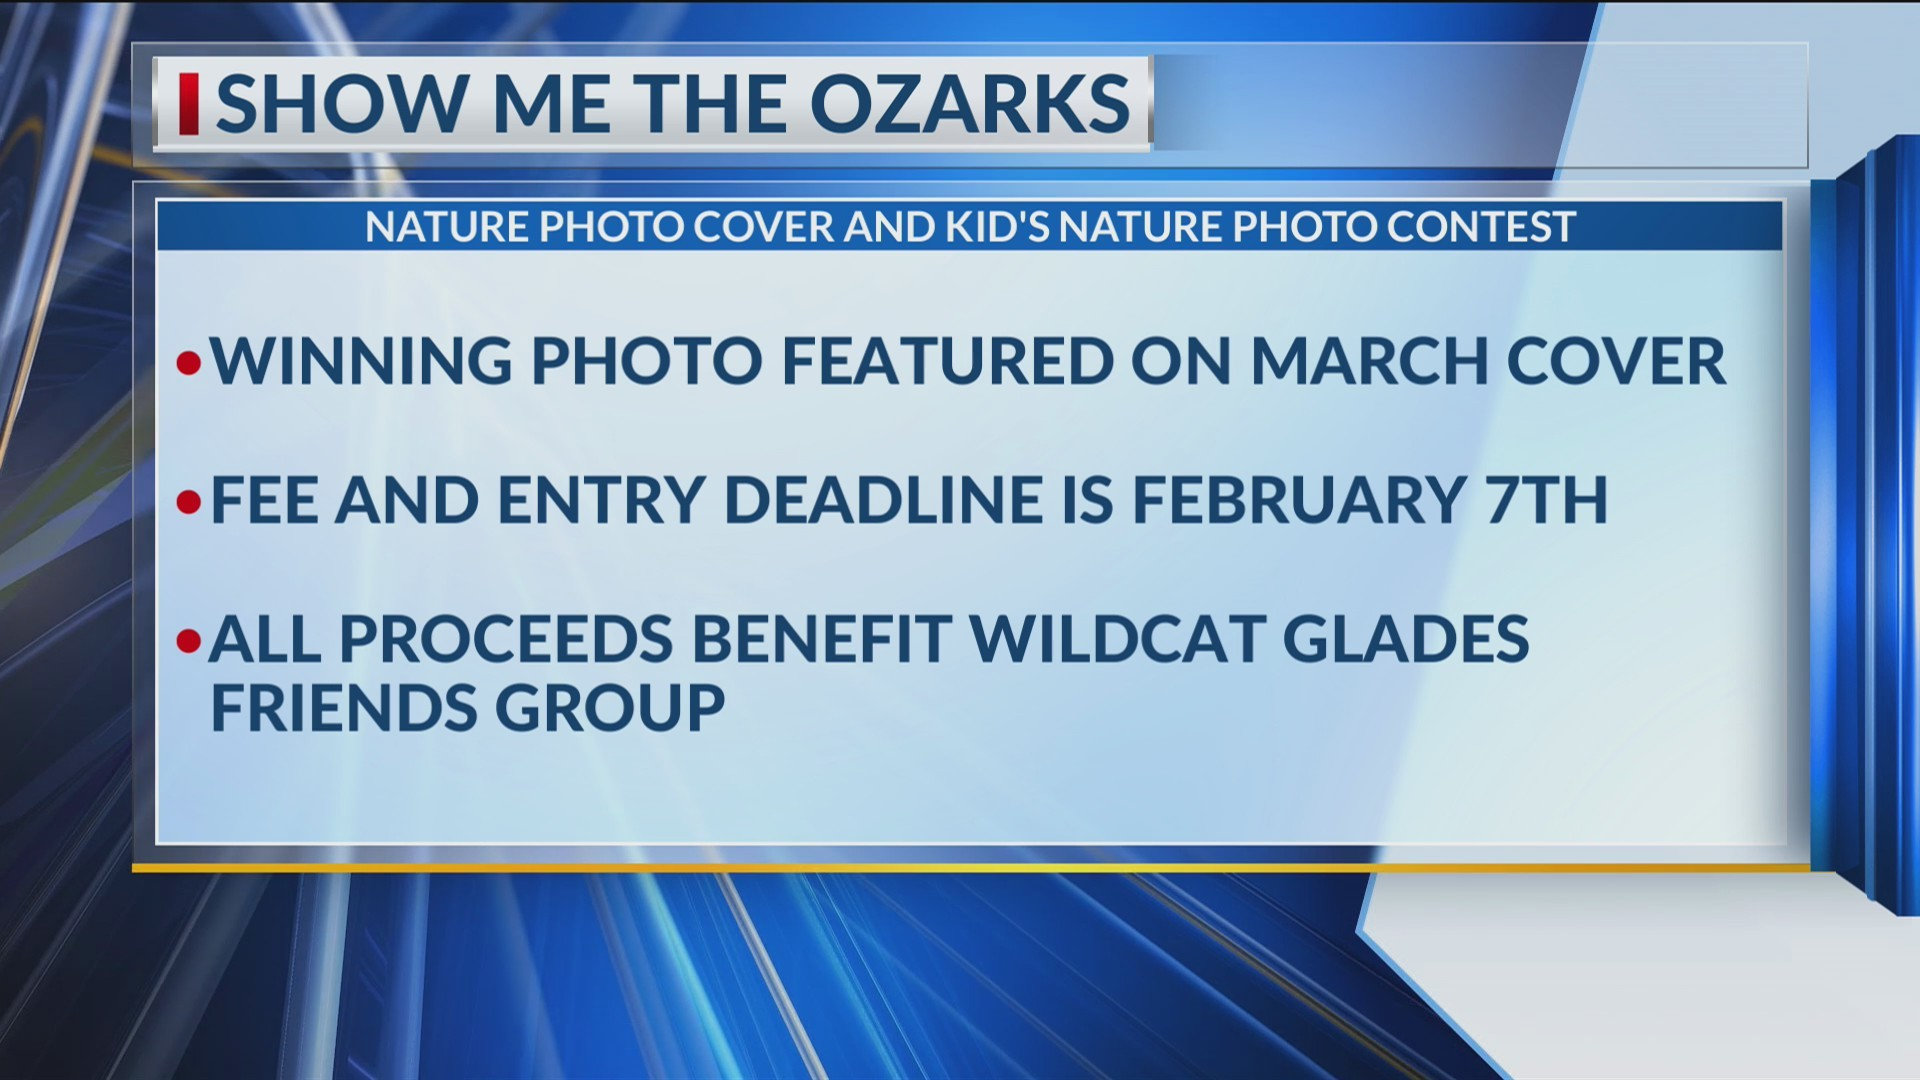 Show Me the Ozarks magazine accepting entries for